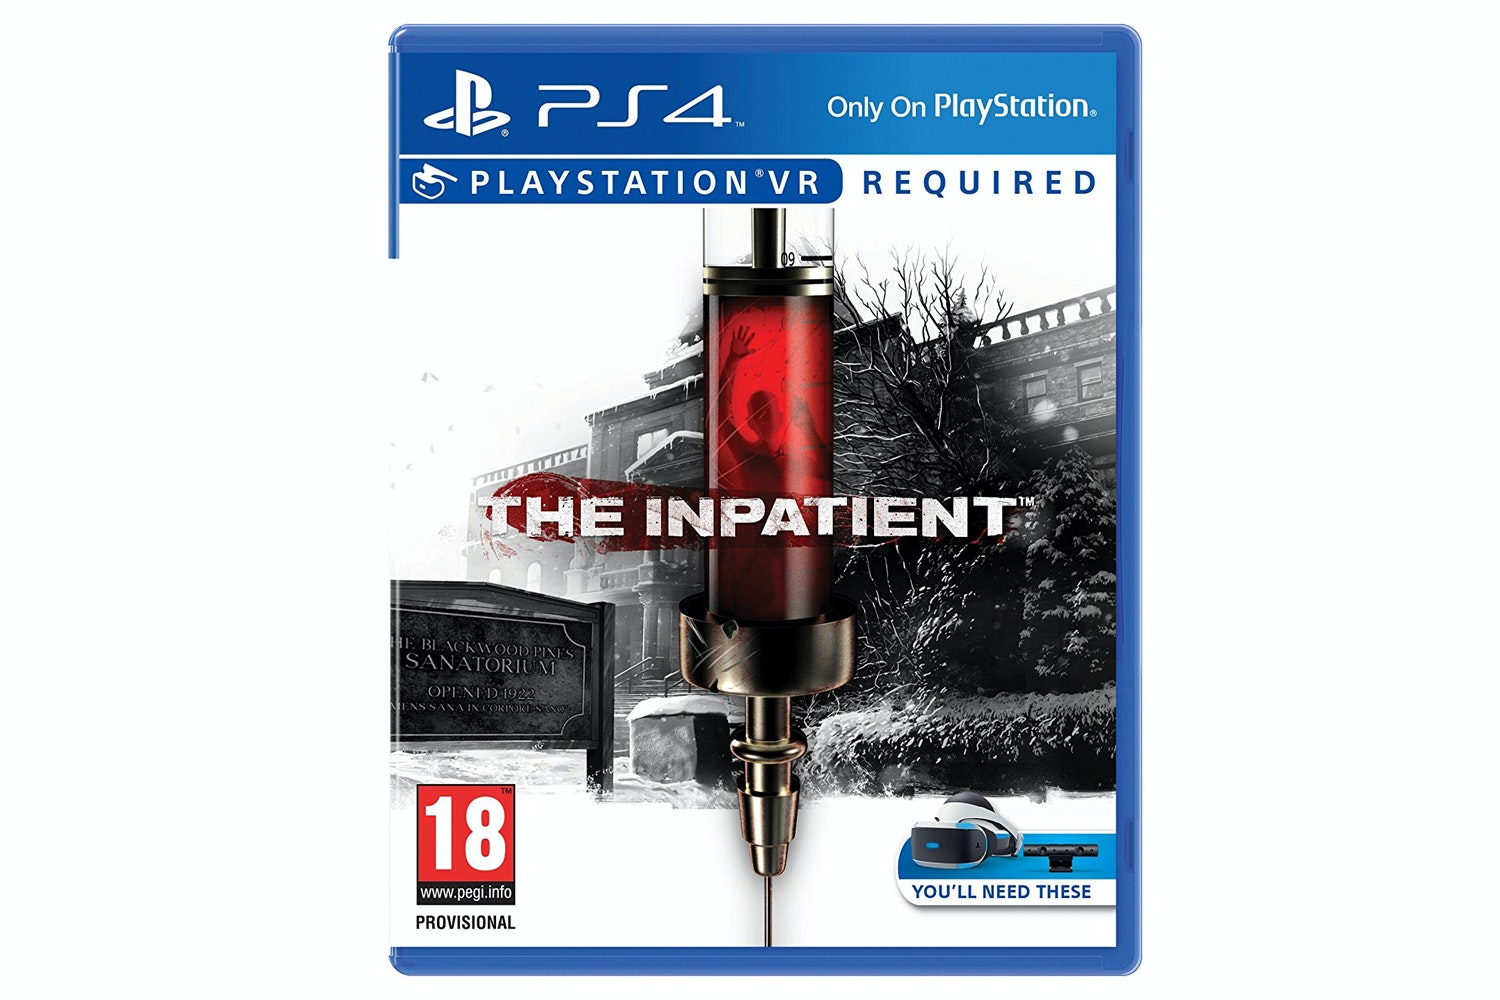 The Inpatient | PS4 VR